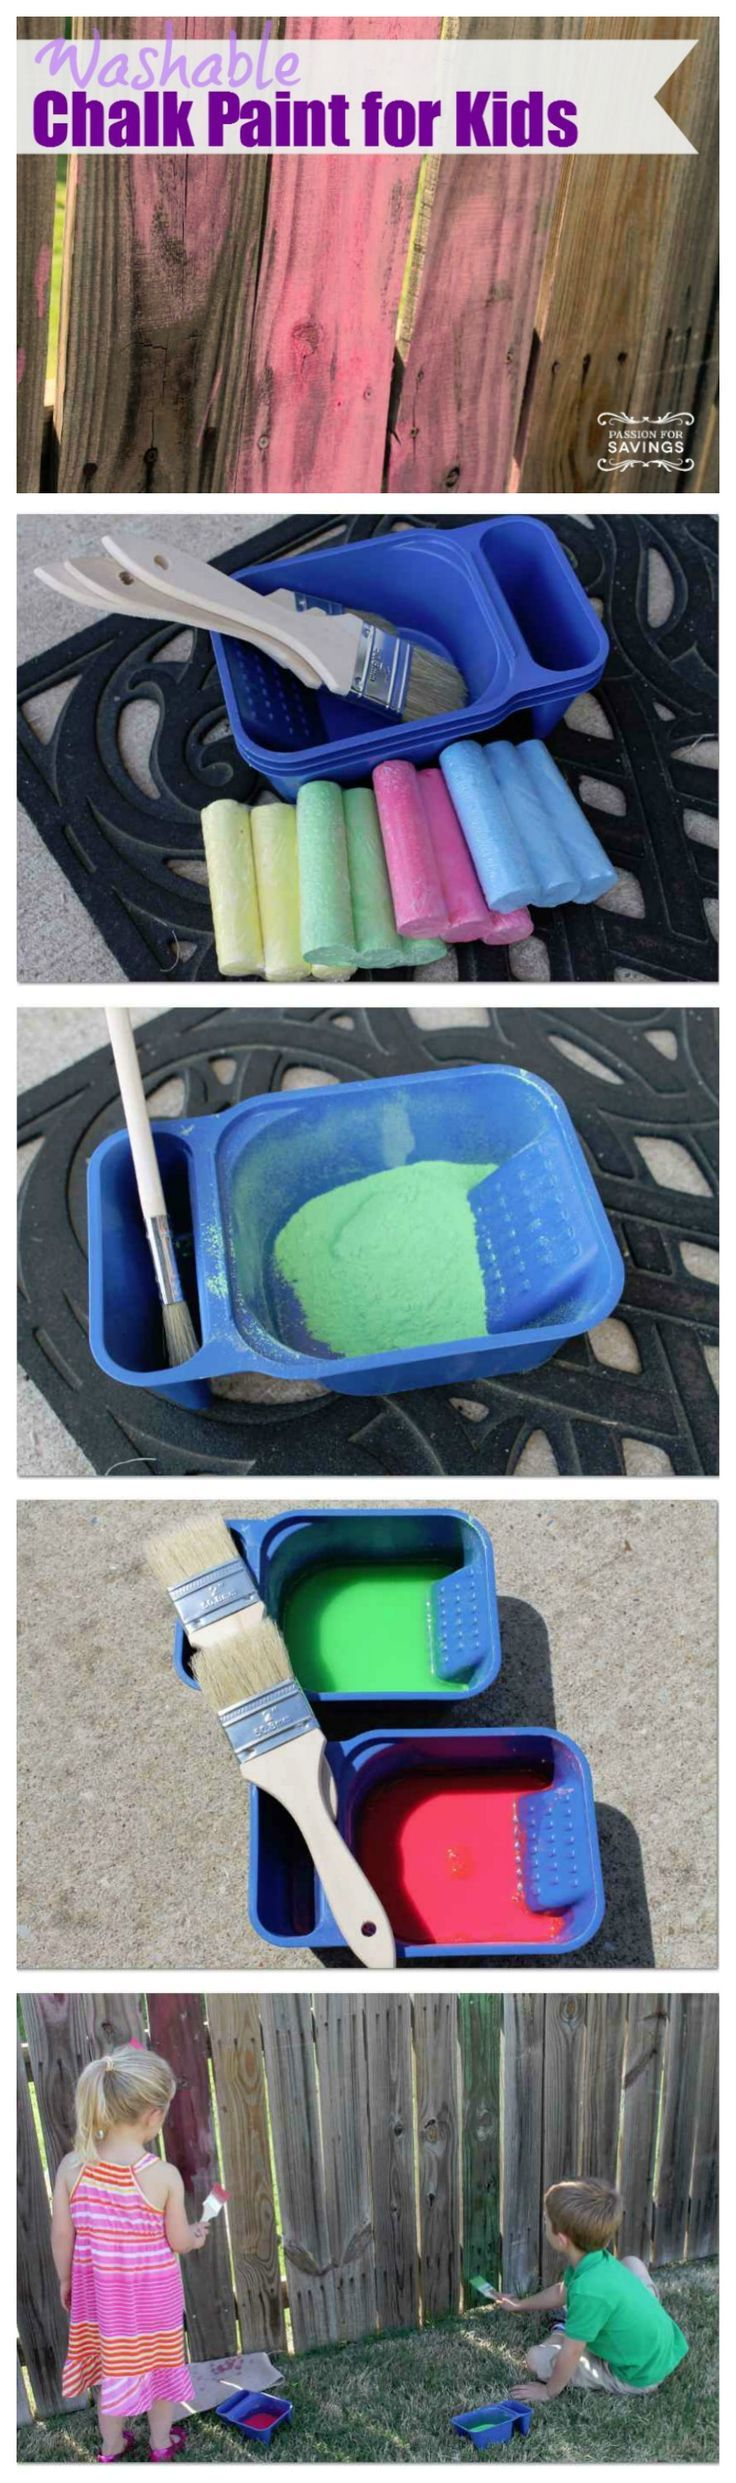 25 best ideas about backyard water fun on pinterest backyard water games fun water games and backyard games kids